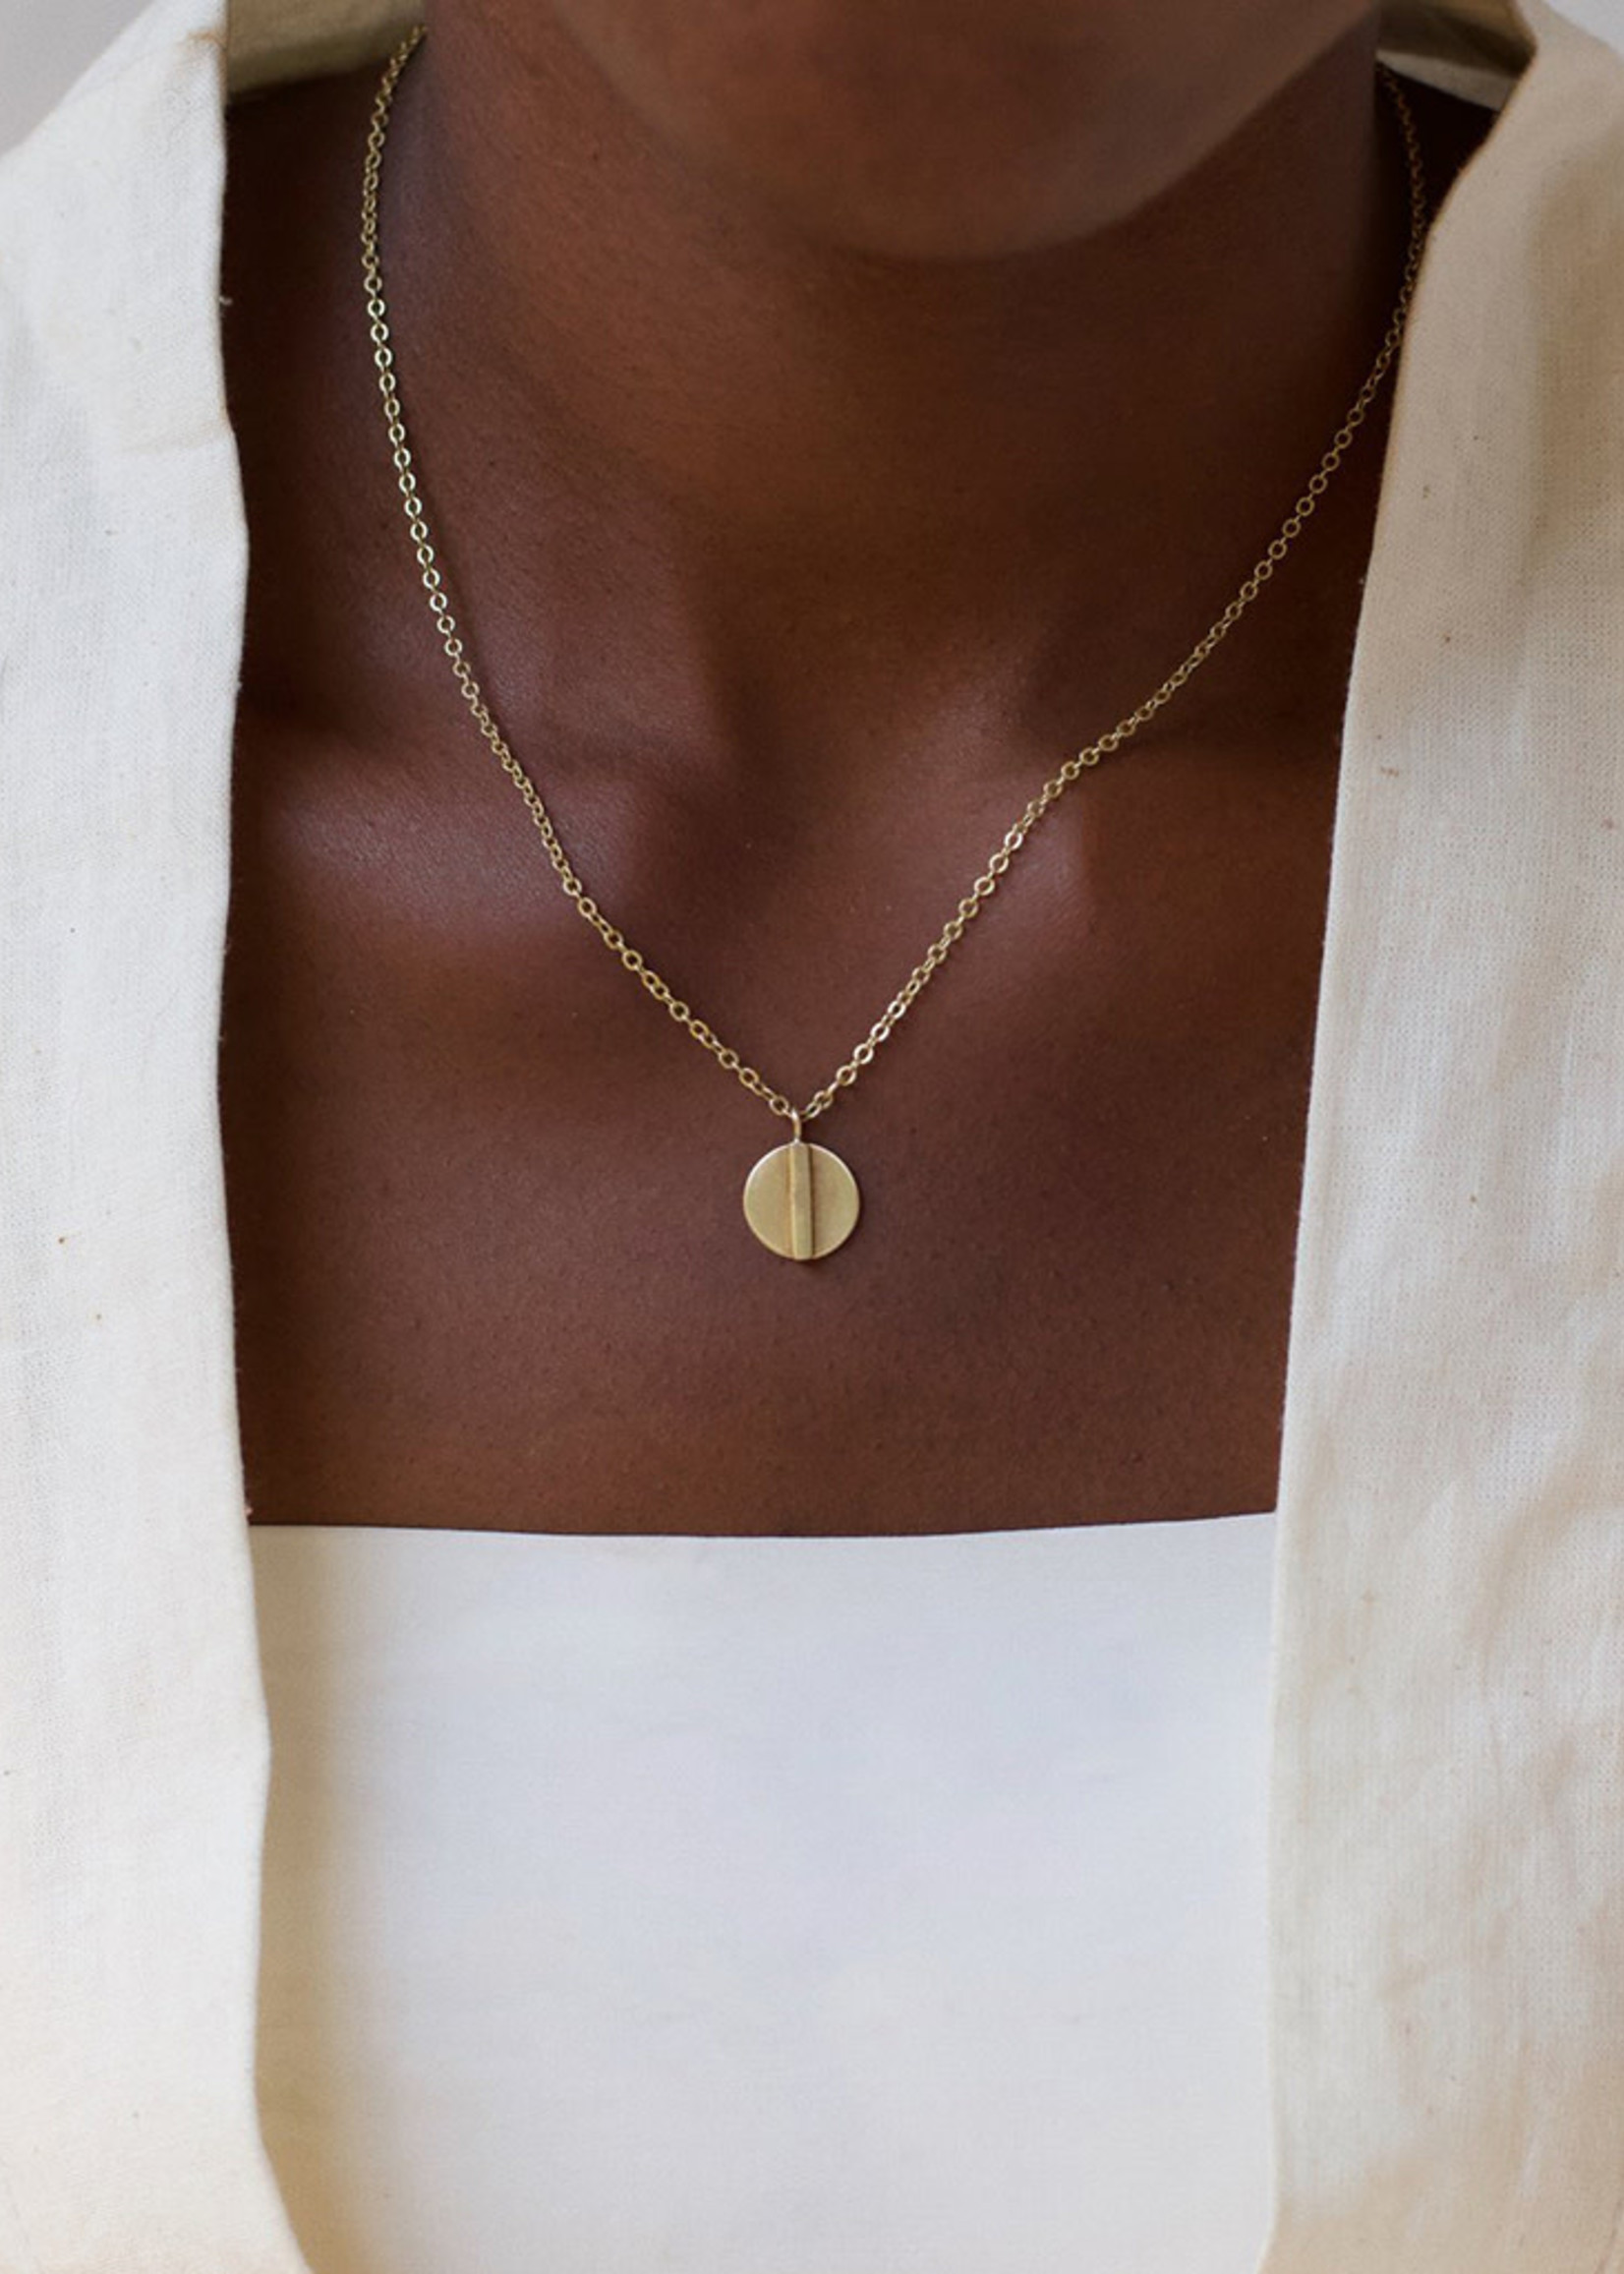 YEWO Mbale Necklace